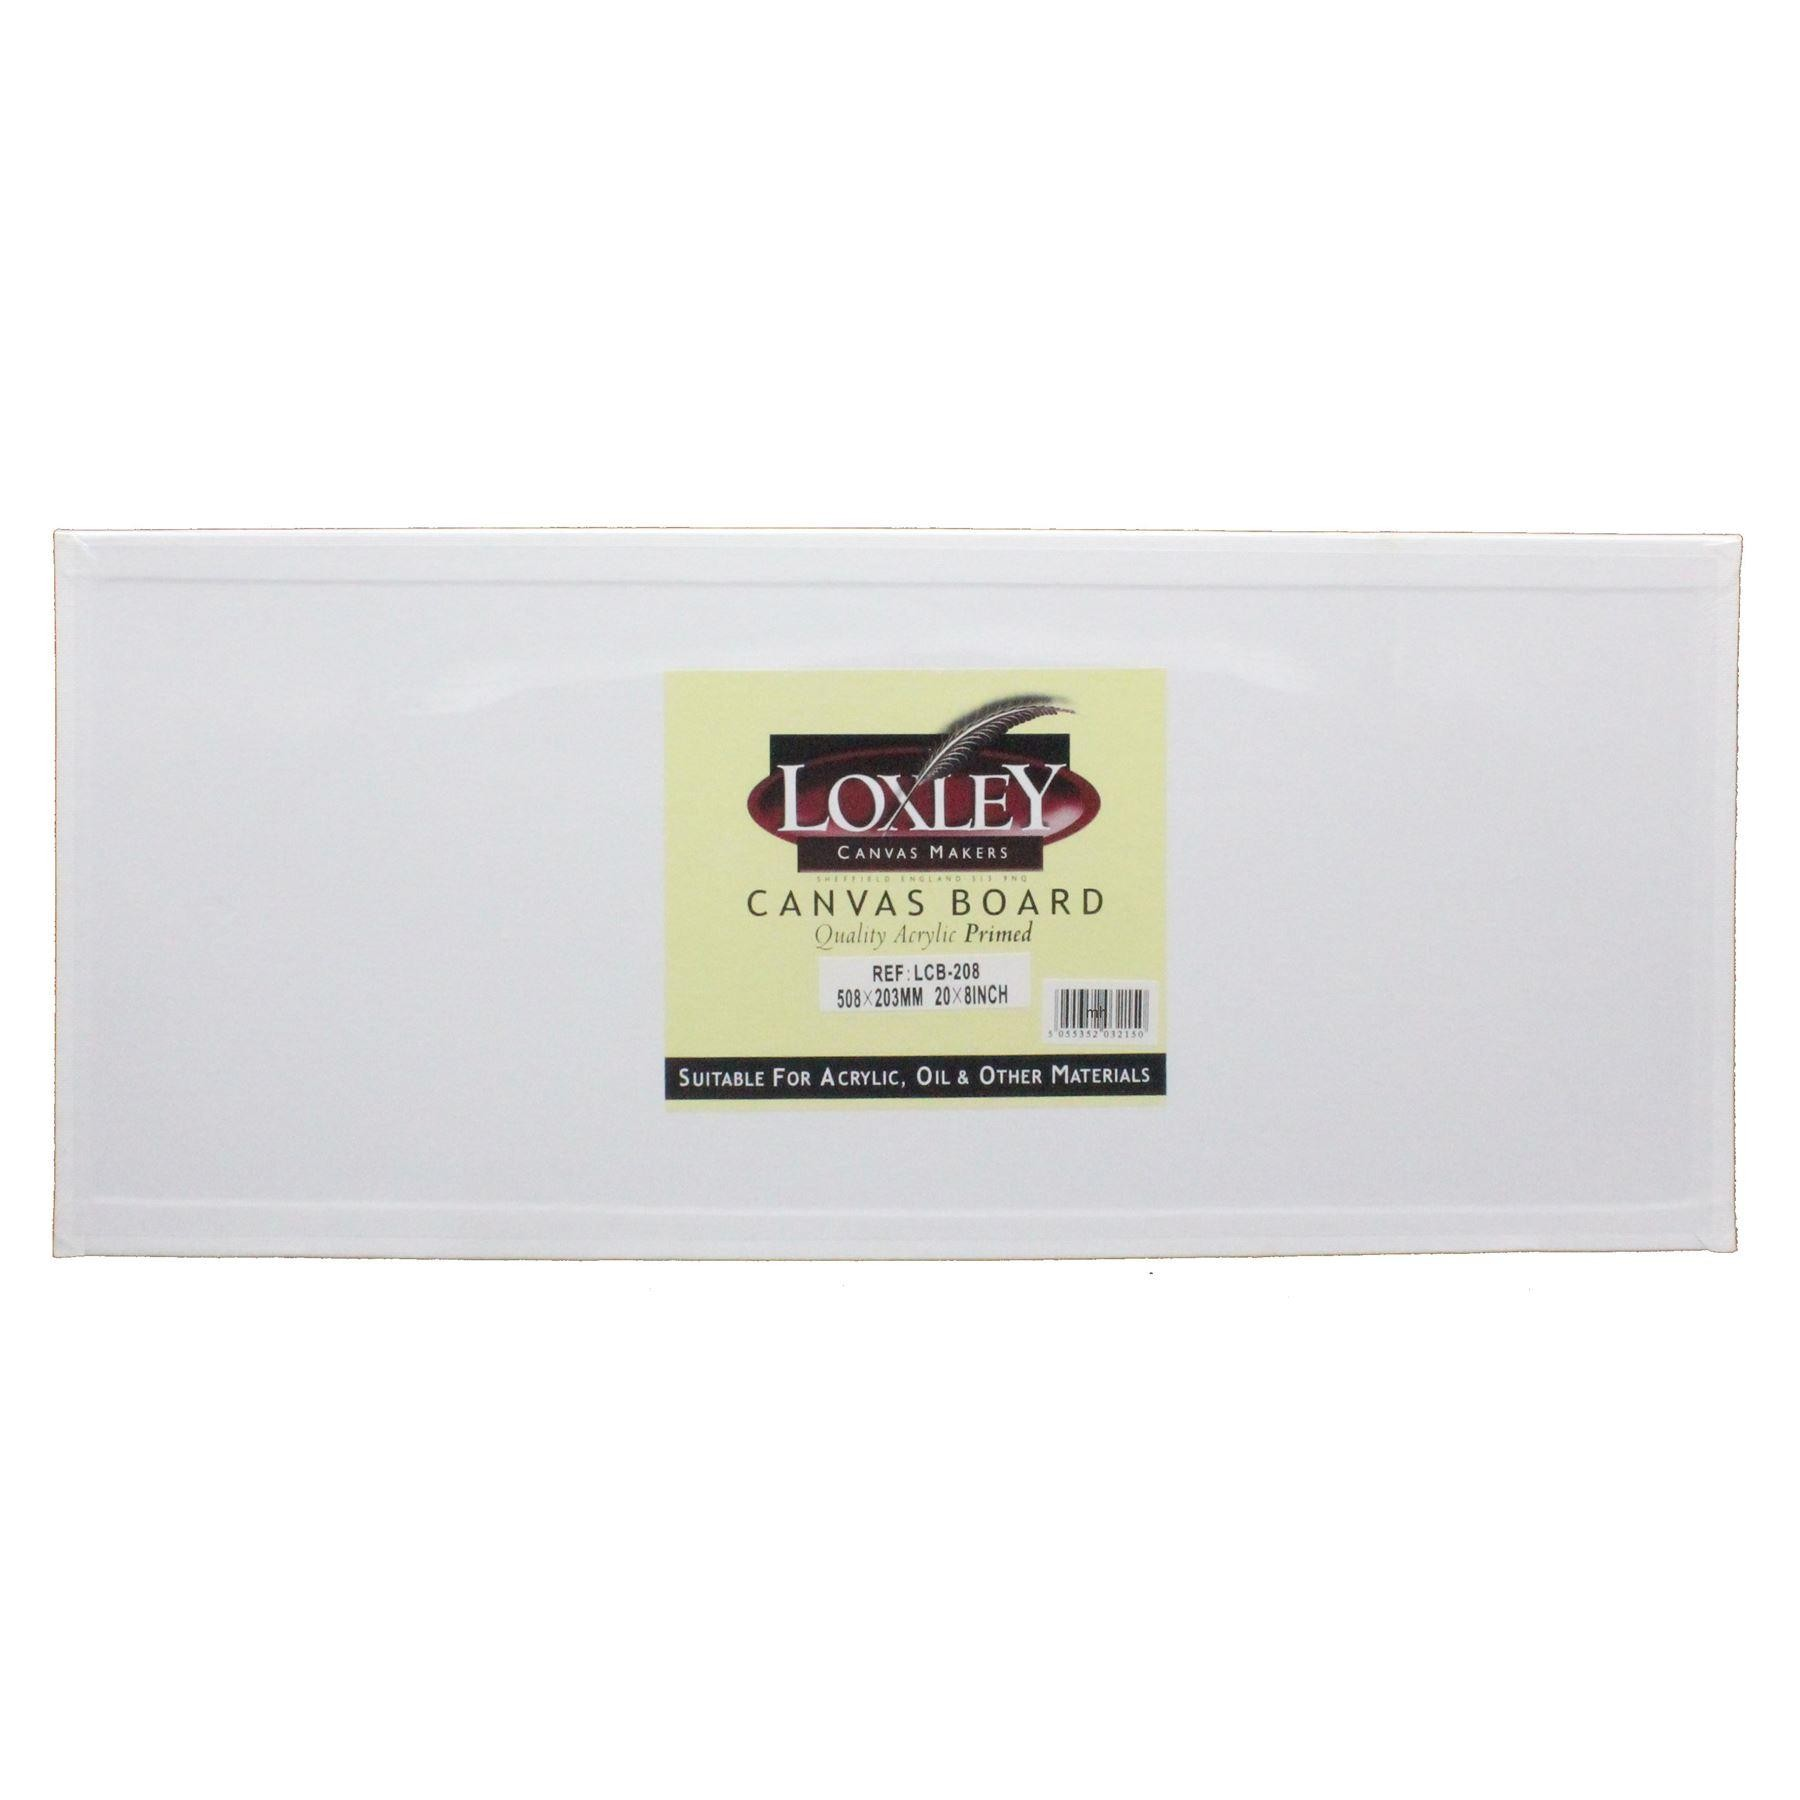 """Double Primed Acrylic Canvas Board from Loxley 20 x 8"""""""